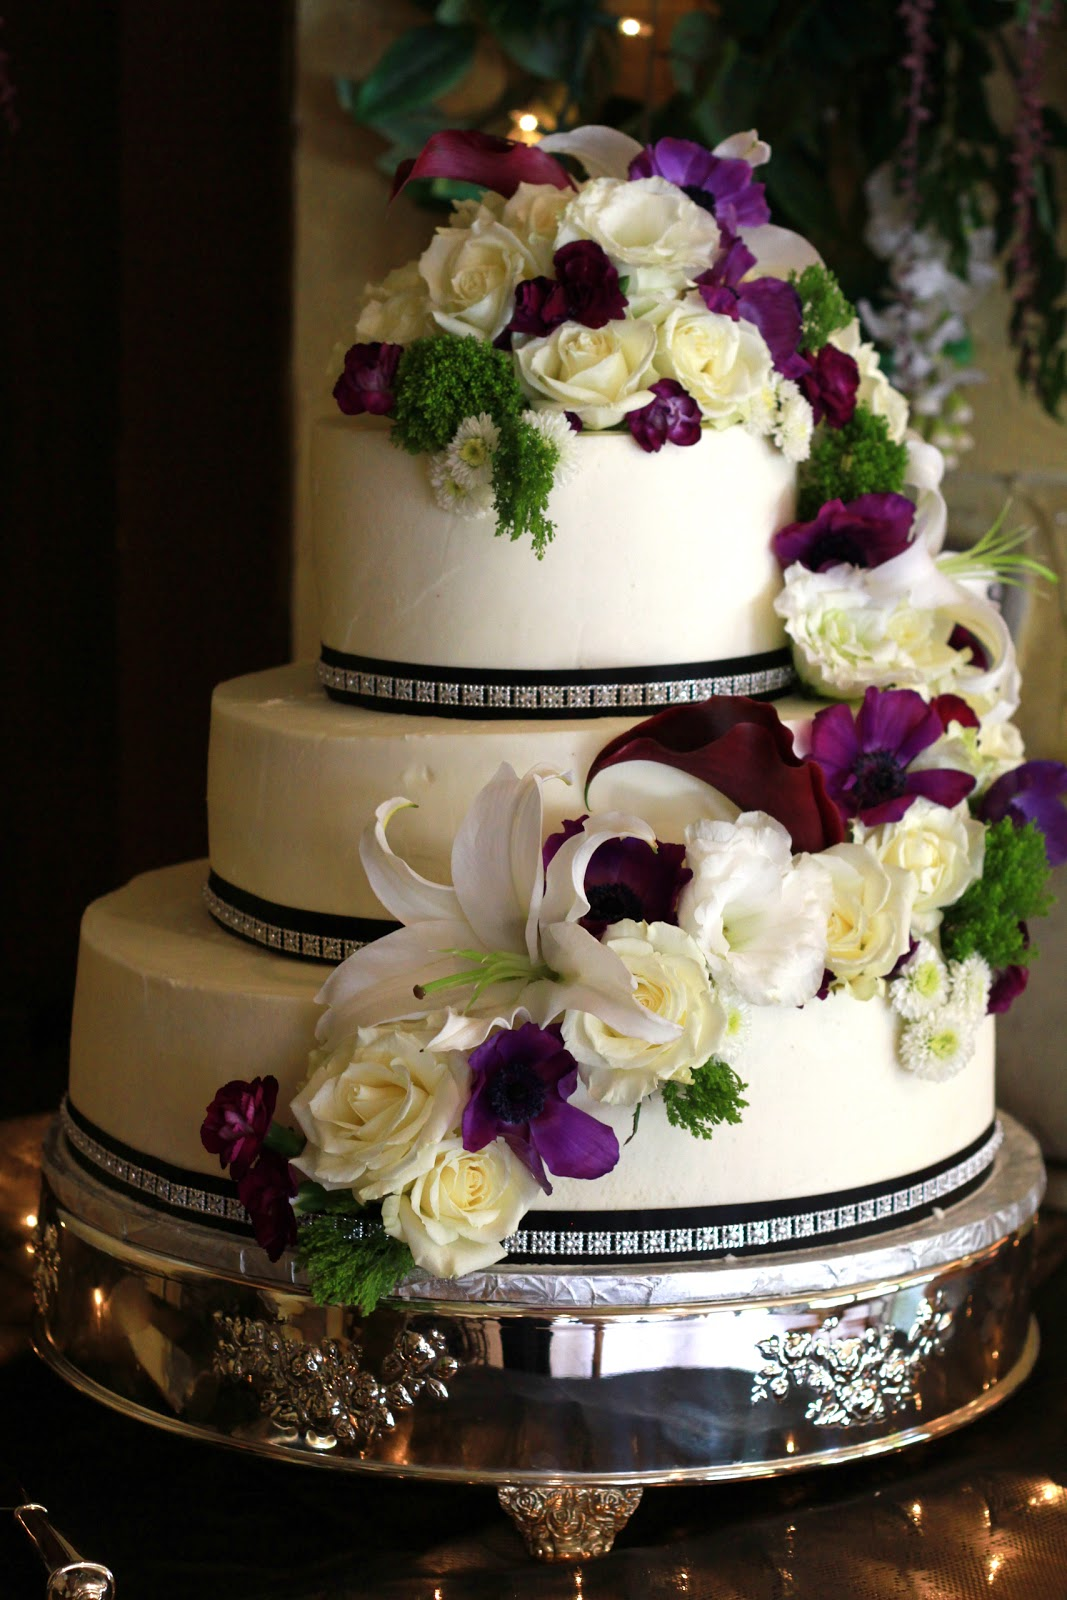 Cake Art Flowers : Wedding Cake Frosting - Wedding Plan Ideas